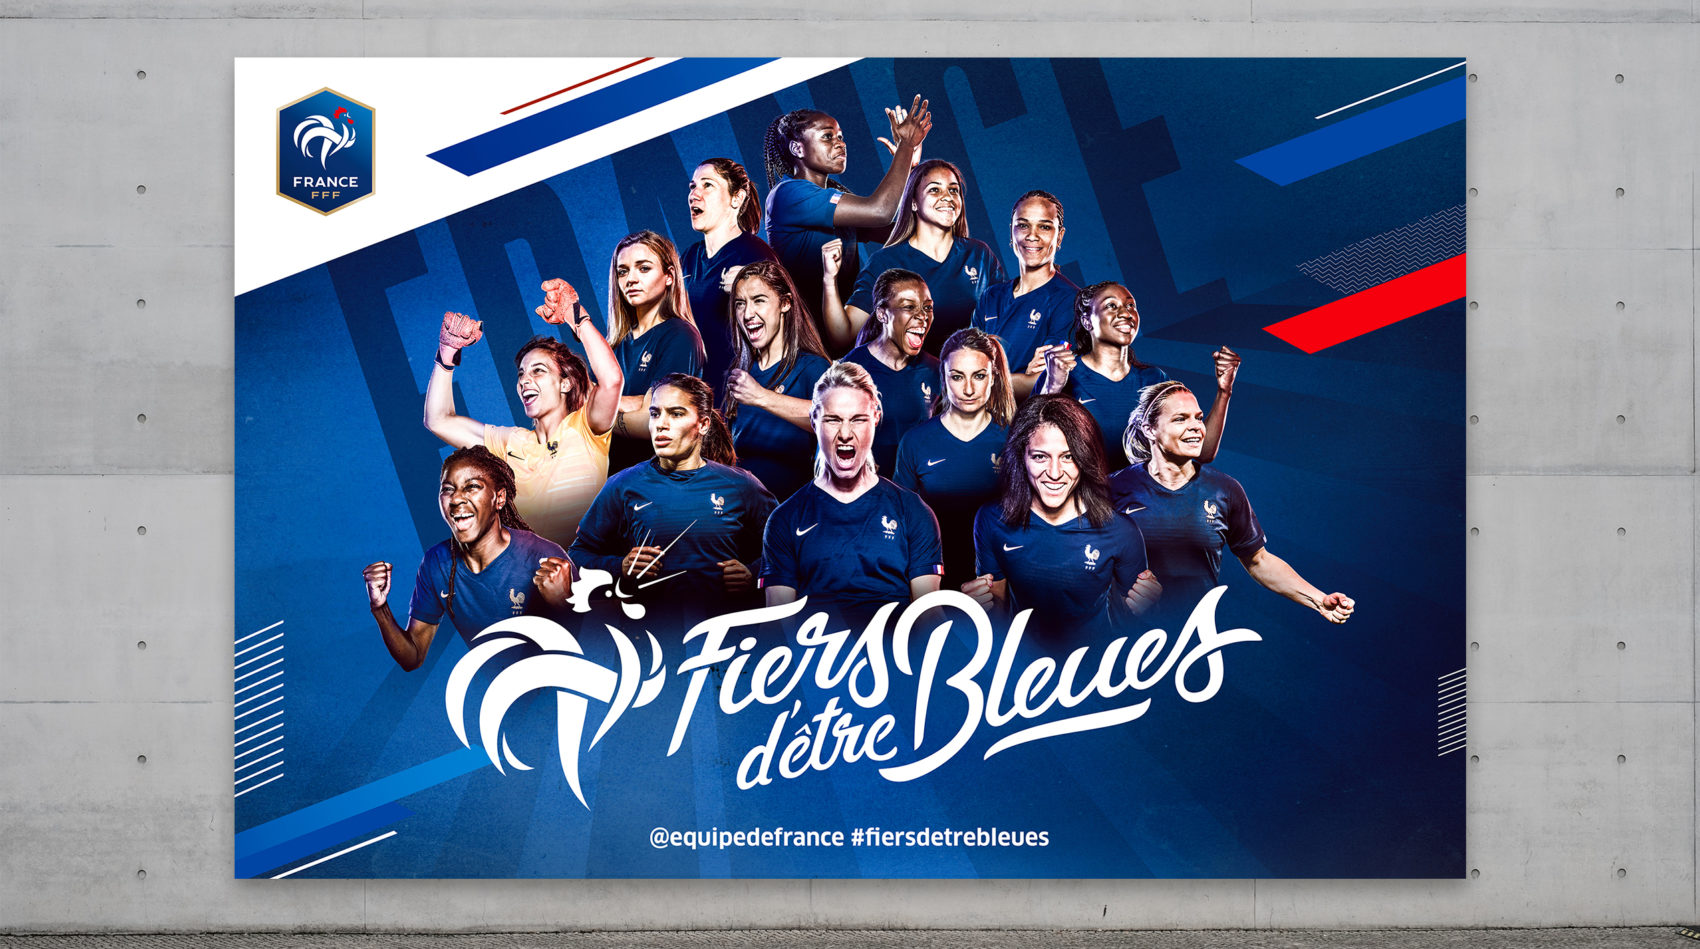 Projet_project_FFF_federation_francaise_football_french_federation_Coupe_du_Monde_Feminine_FIFA_France_2019_TM_world_cup_women_groupe